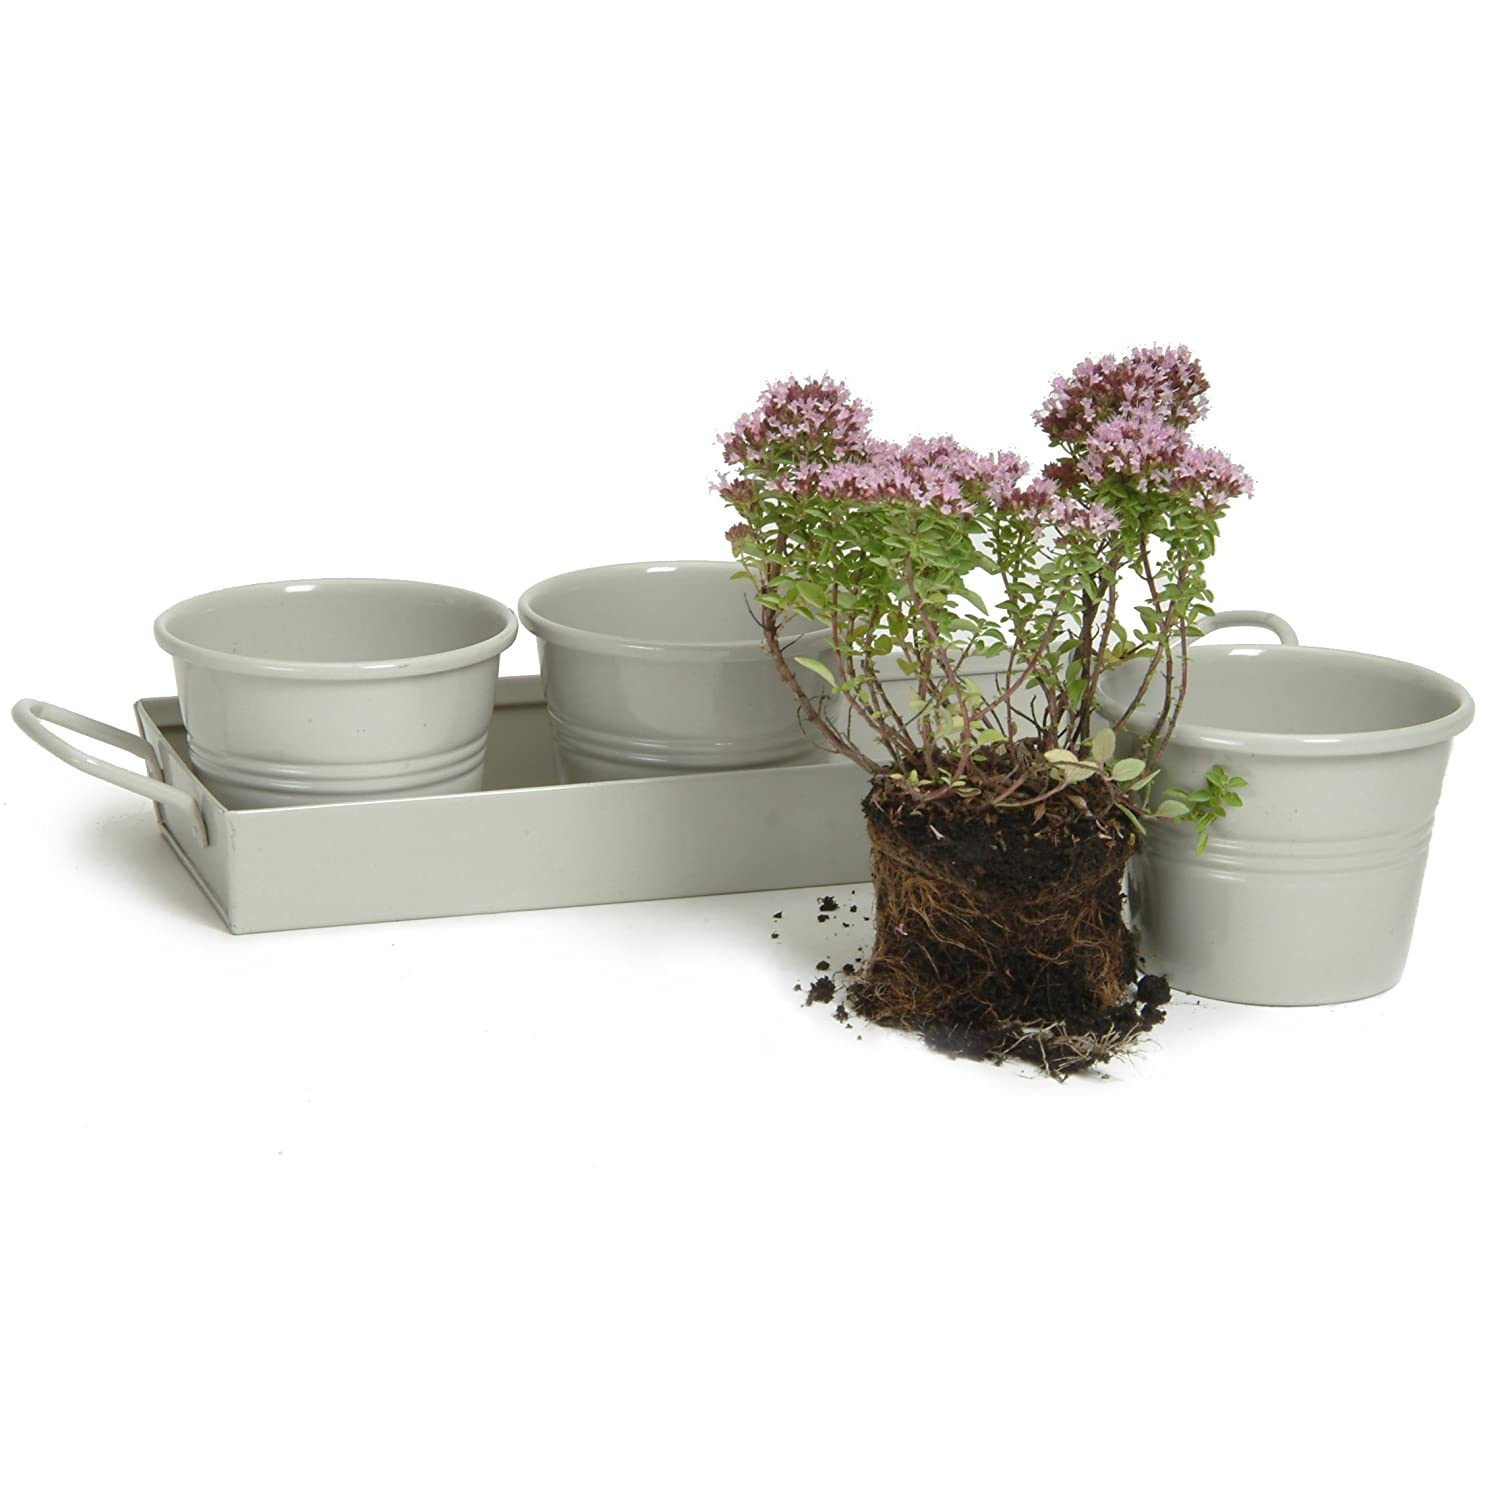 Kitchen herb pots wooden planter window sill garden plant Kitchen windowsill herb pots